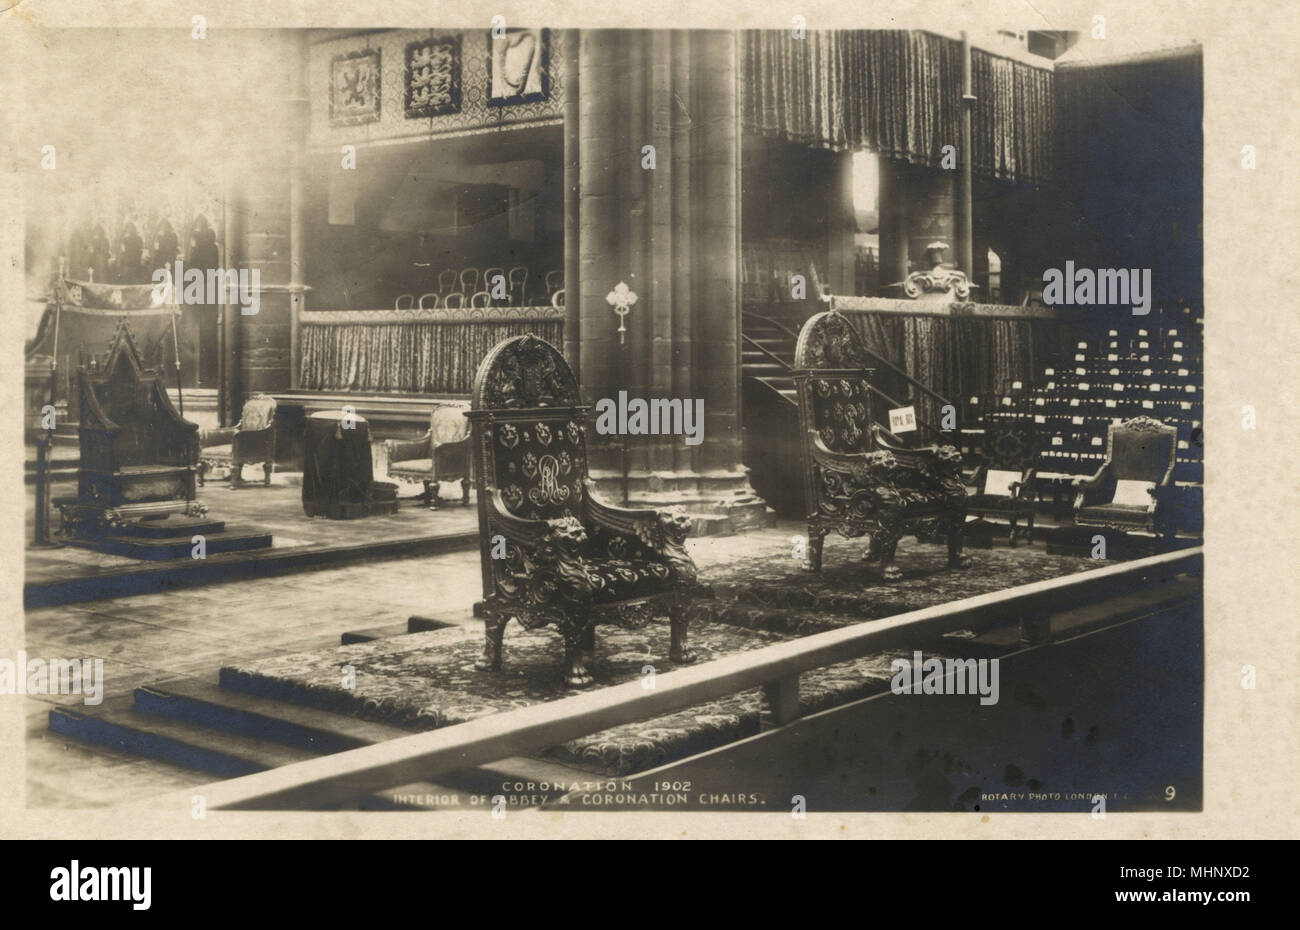 Coronation of King Edward VII and Queen Alexandra -- Westminster Abbey interior with Coronation Chairs.      Date: 1902 - Stock Image